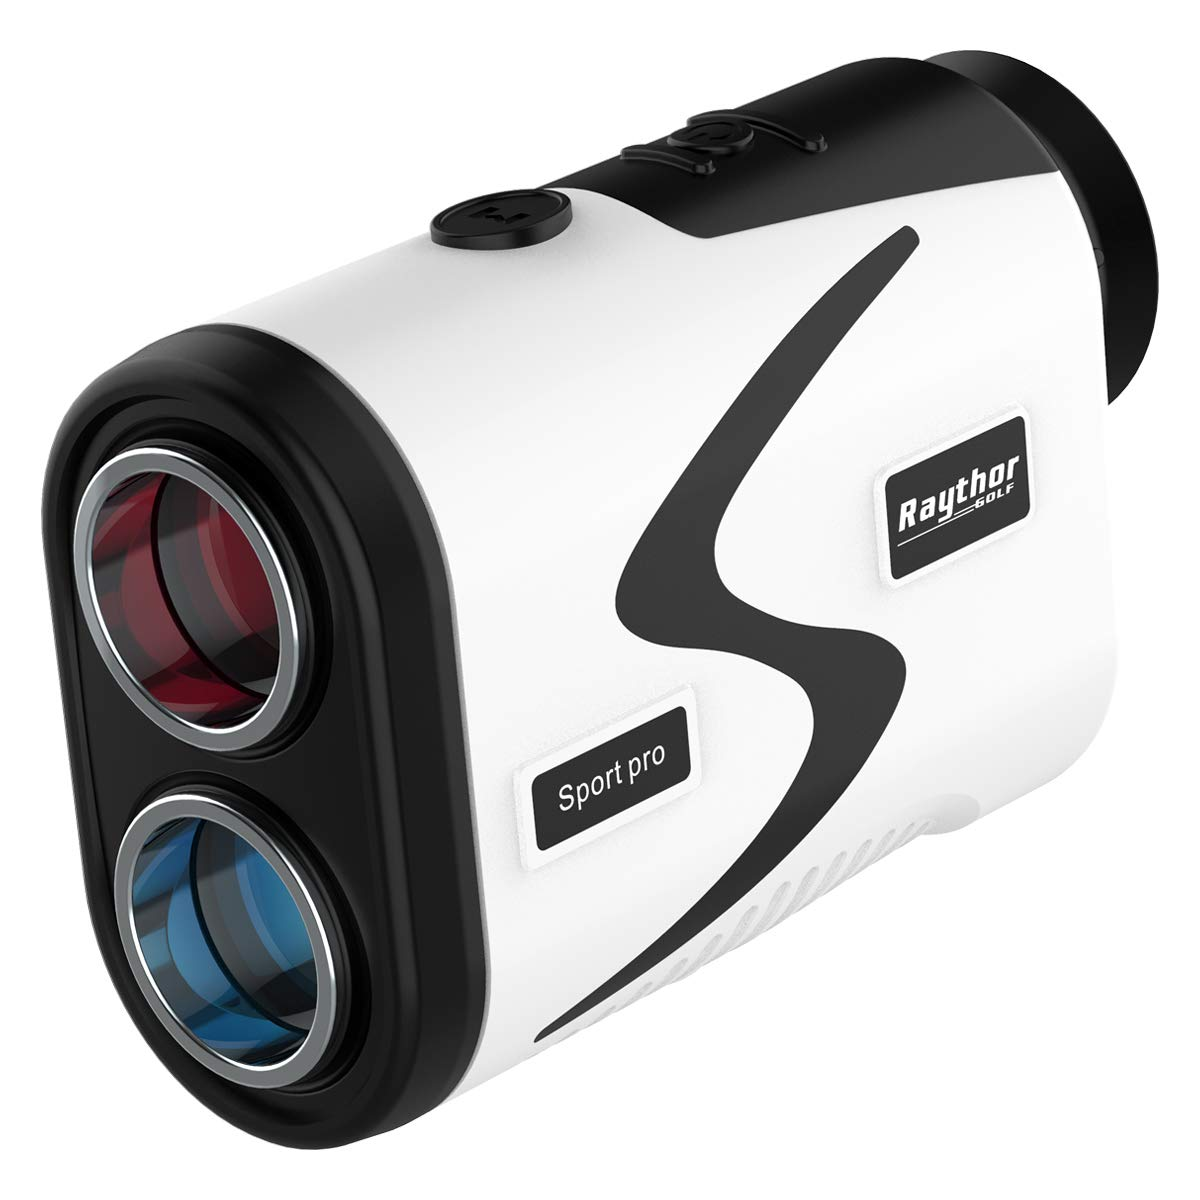 Raythor Rangefinder Rechargeable Adjustment Continuous